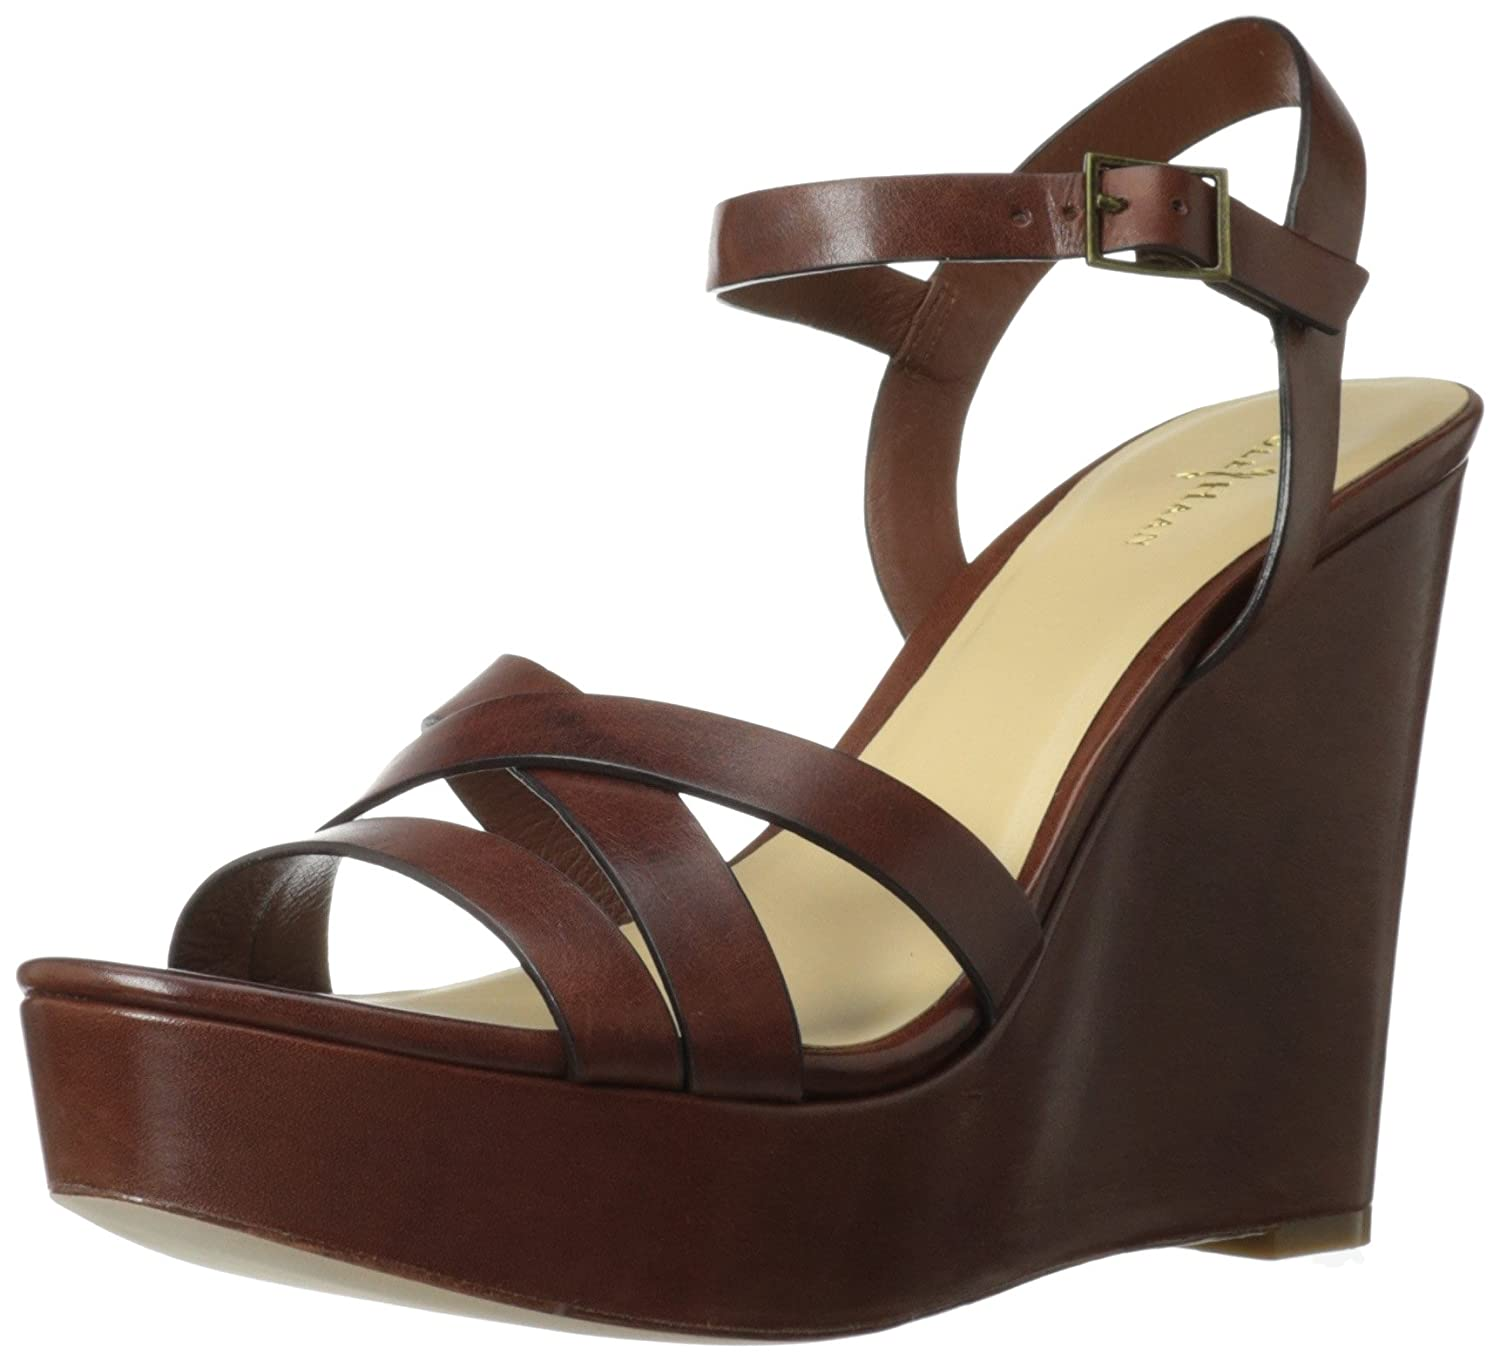 Cole Haan Women's Melrose Wedge Sandal B00EKAZD12 11 B(M) US|Sequoia